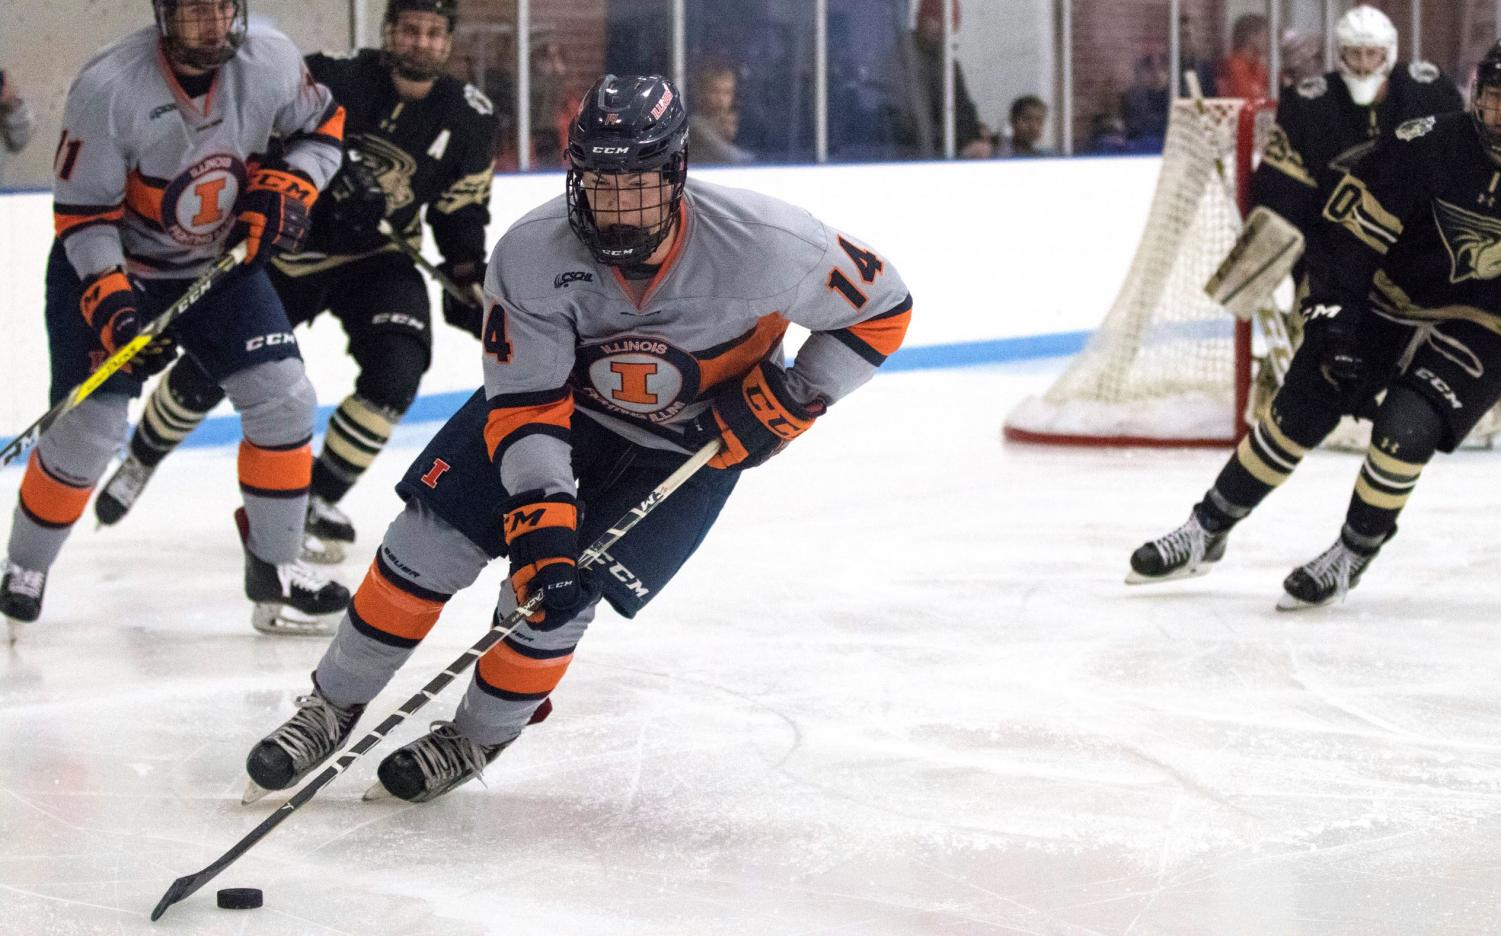 Neil Novosel skates past Lindenwood's players to gain possession of the puck at the Ice Arena on Dec. 1.  Illini won in overtime 2-1.